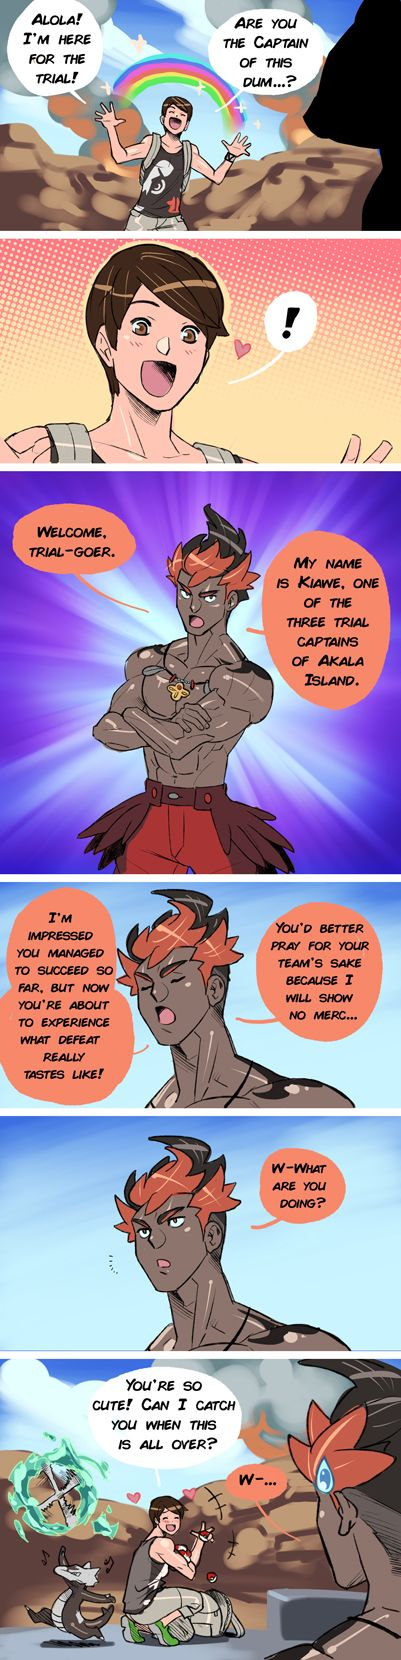 "Silly Kiawe comic on Tumblr; kind of one of those ""what if"" scenarios about questioning the trials and a gay MC"